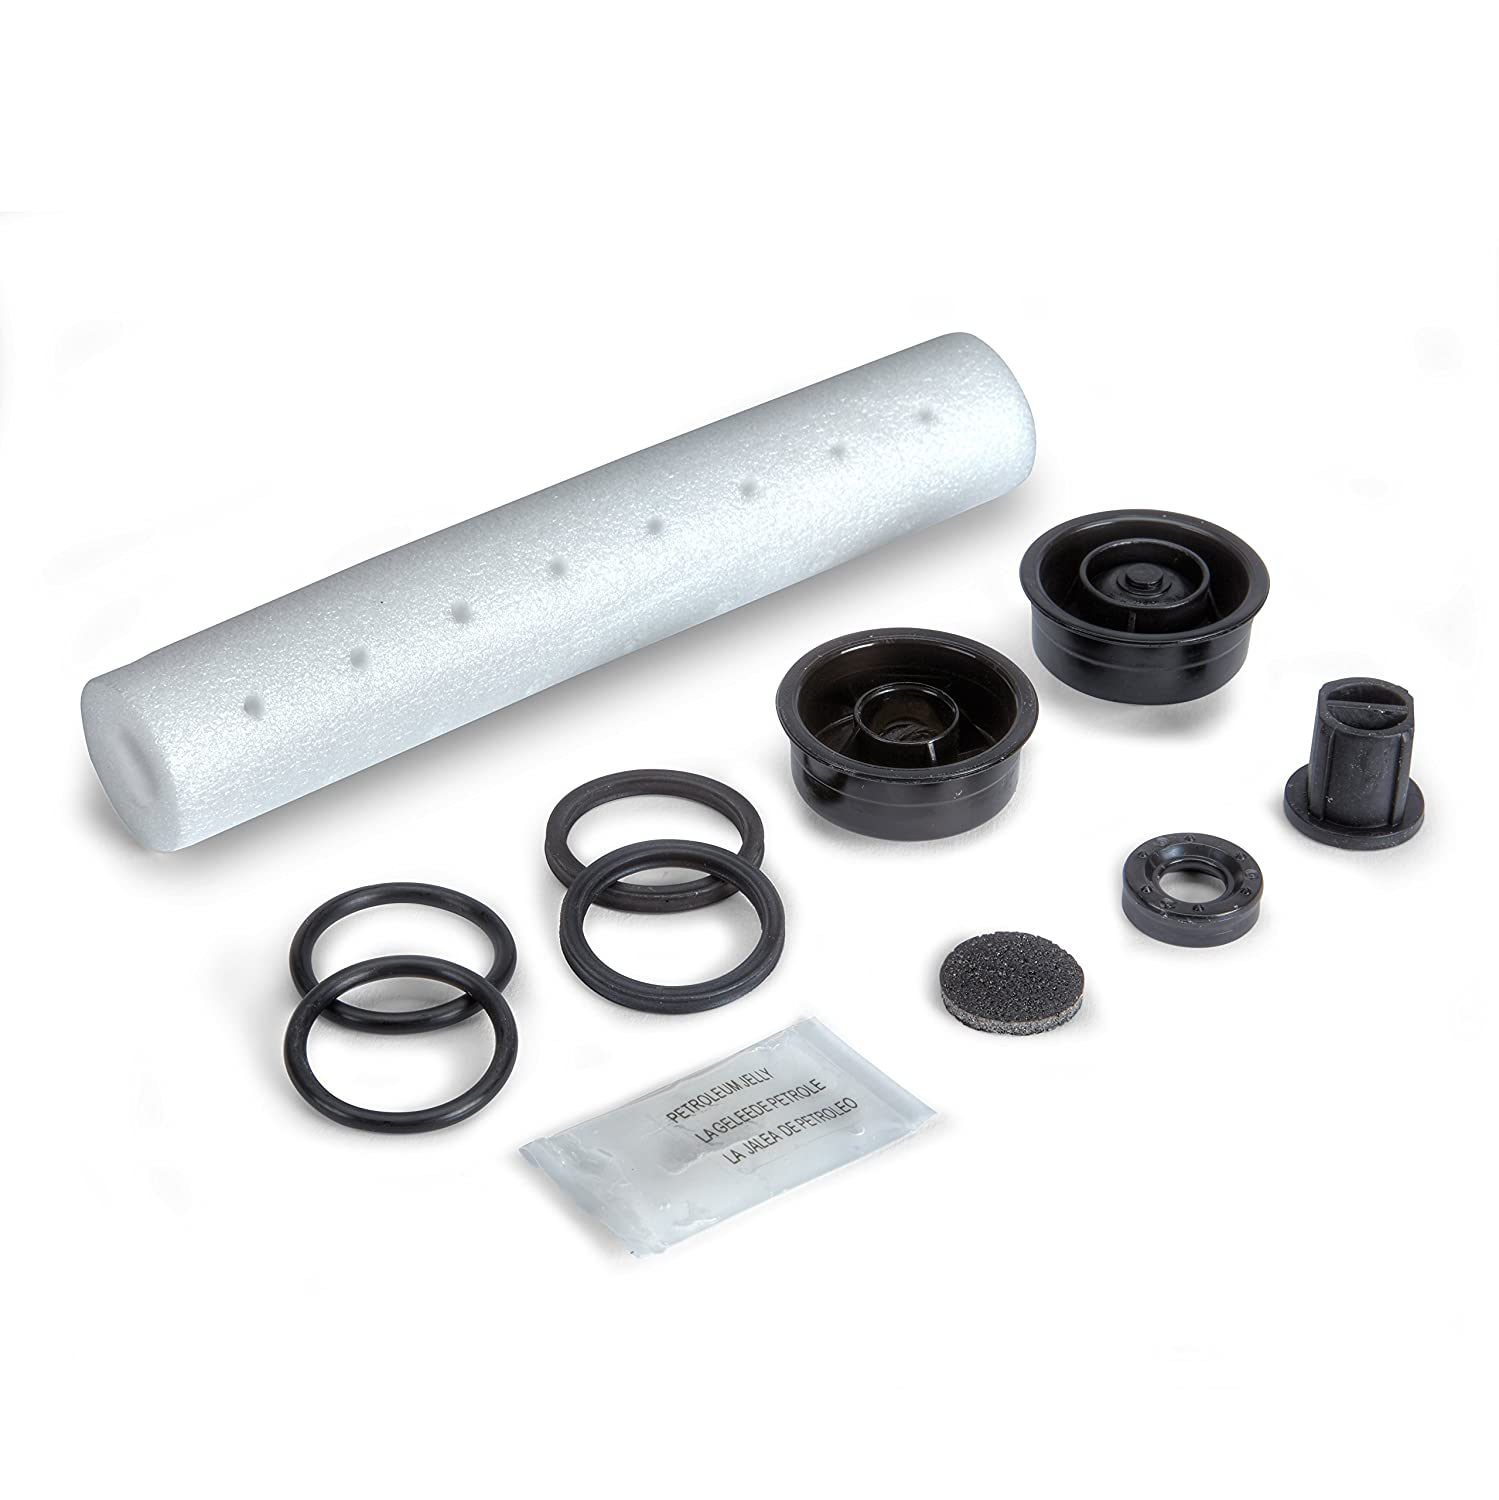 Home Right C800798 HomeRight PaintStick Tune up Kit Paint Roller Accessory, Multiple